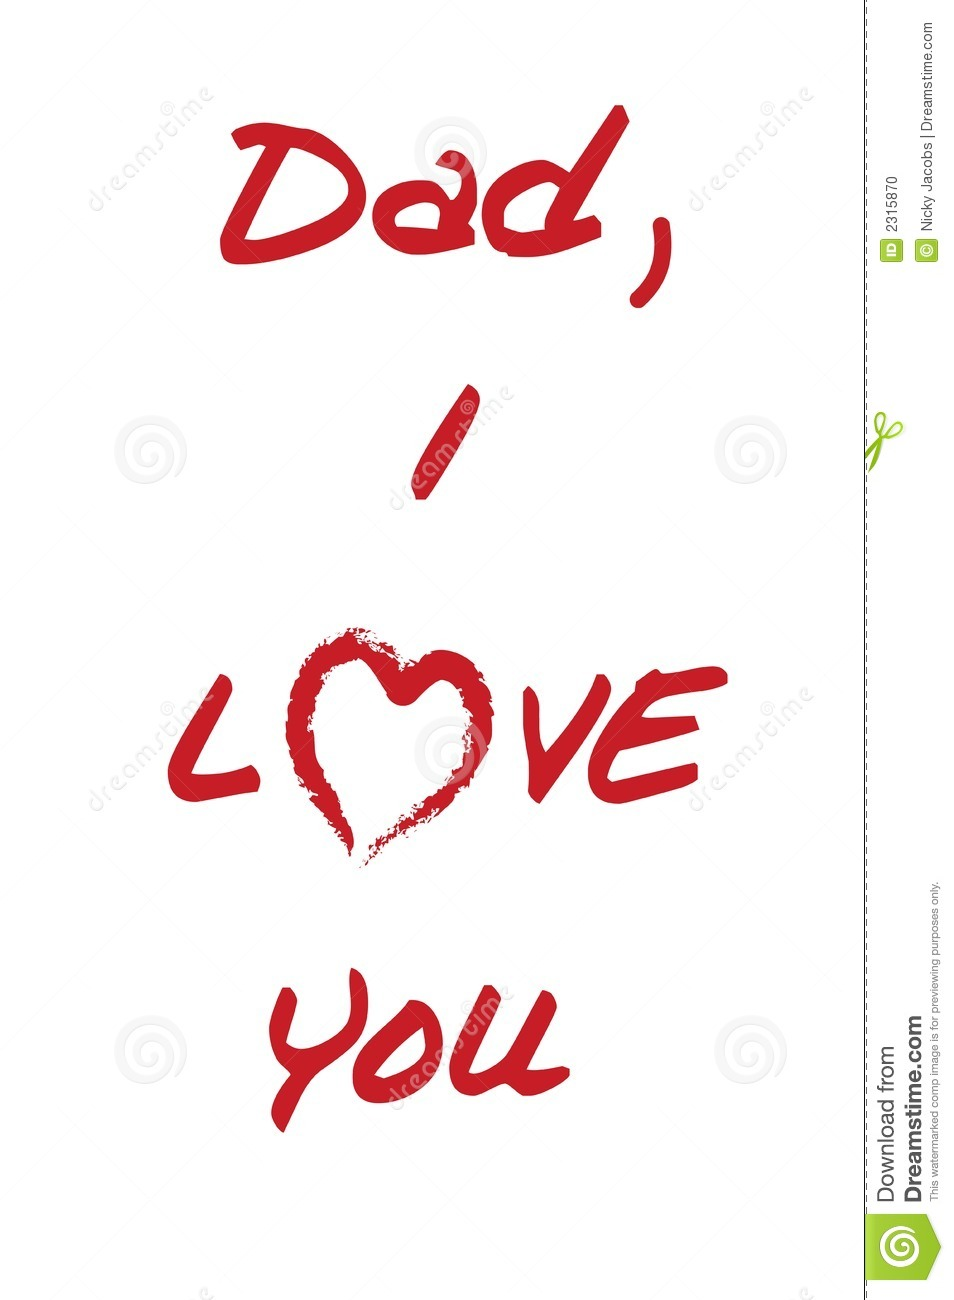 Dad I Love You Stock Vector Illustration Of Kids Pencil 2315870